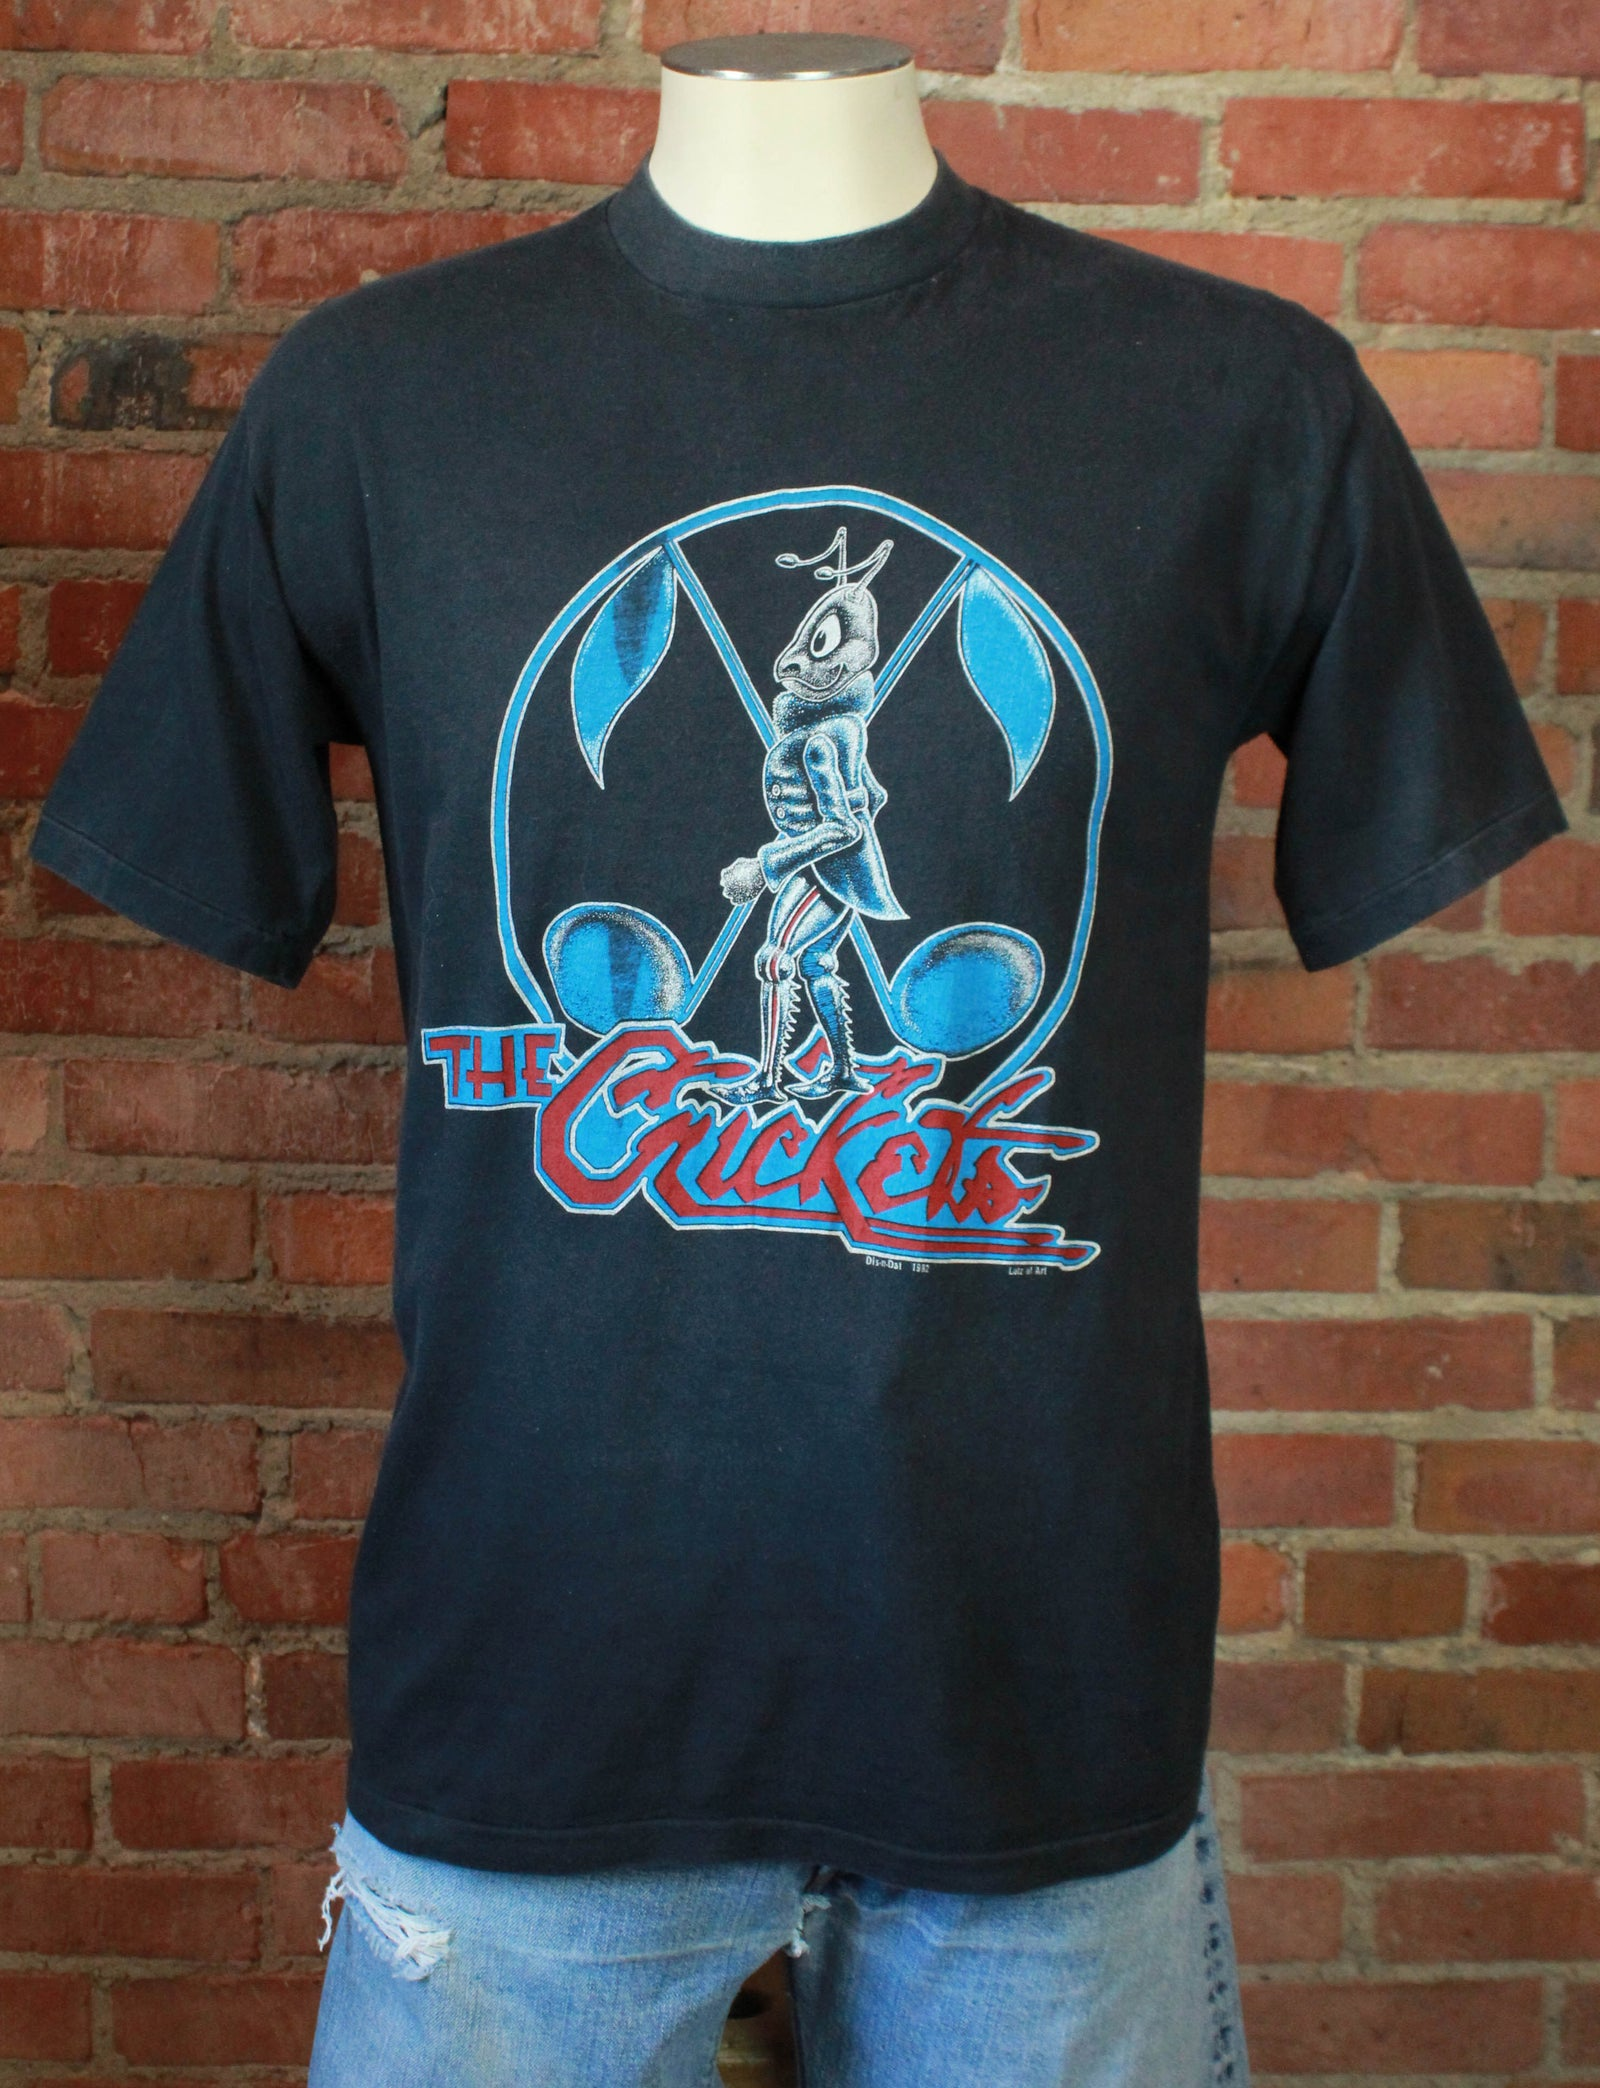 Vintage The Crickets Concert T Shirt 1982 Tour Unisex Medium